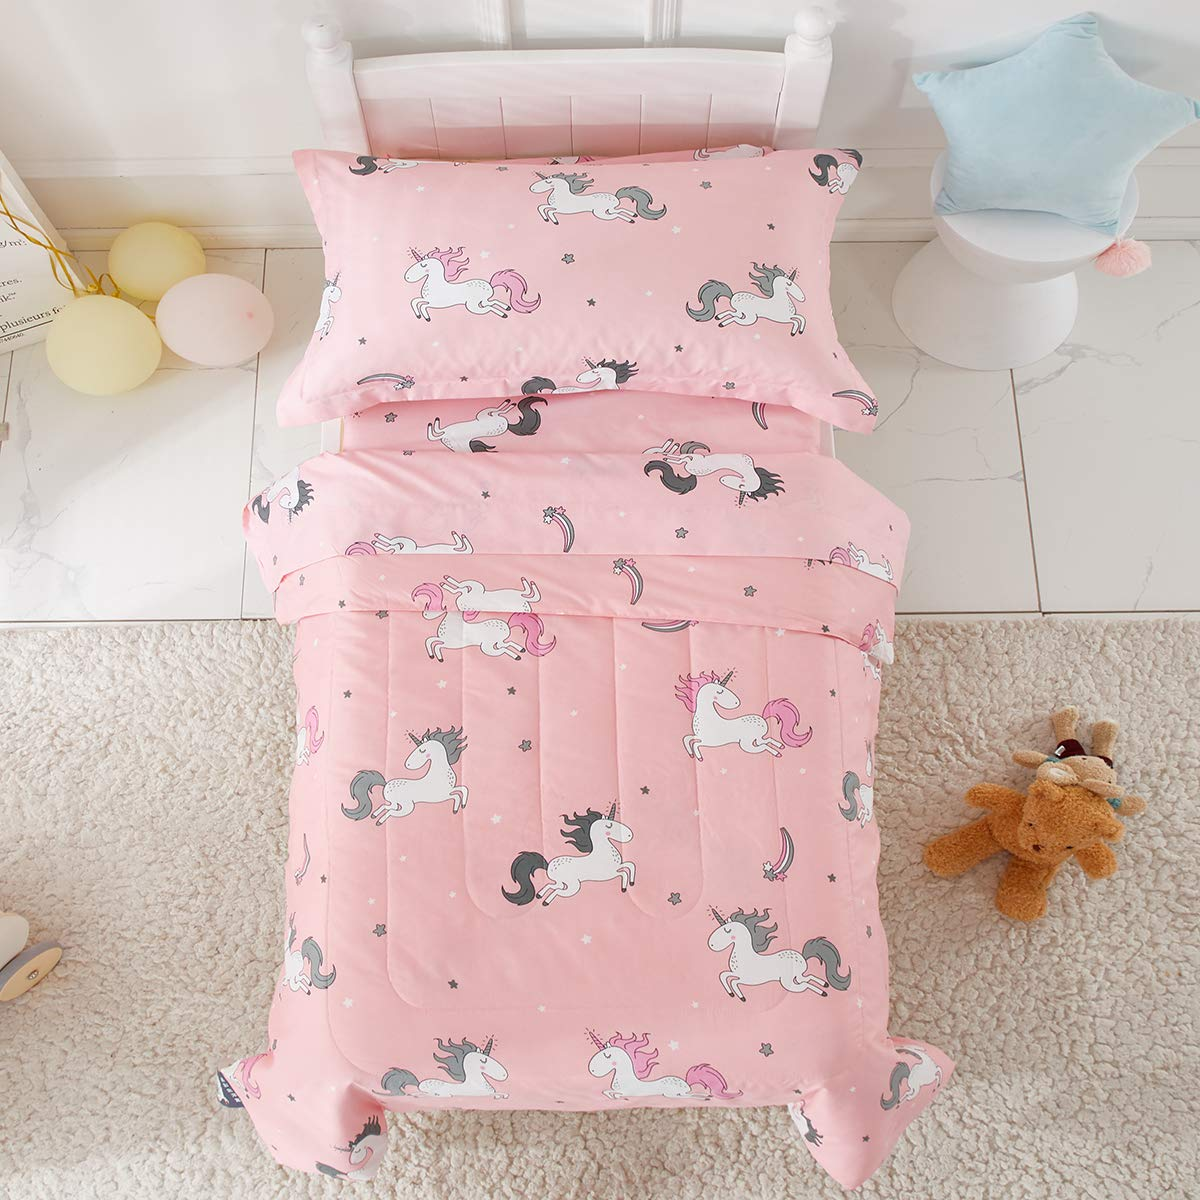 Uozzi Bedding 4 Piece Unicorn Toddler Bedding Set with Rainbow Stars Pink - Includes Adorable Quilted Comforter, Fitted Sheet, Top Sheet, and Pillow Case - Cute Design for Girls Bed by Uozzi Bedding